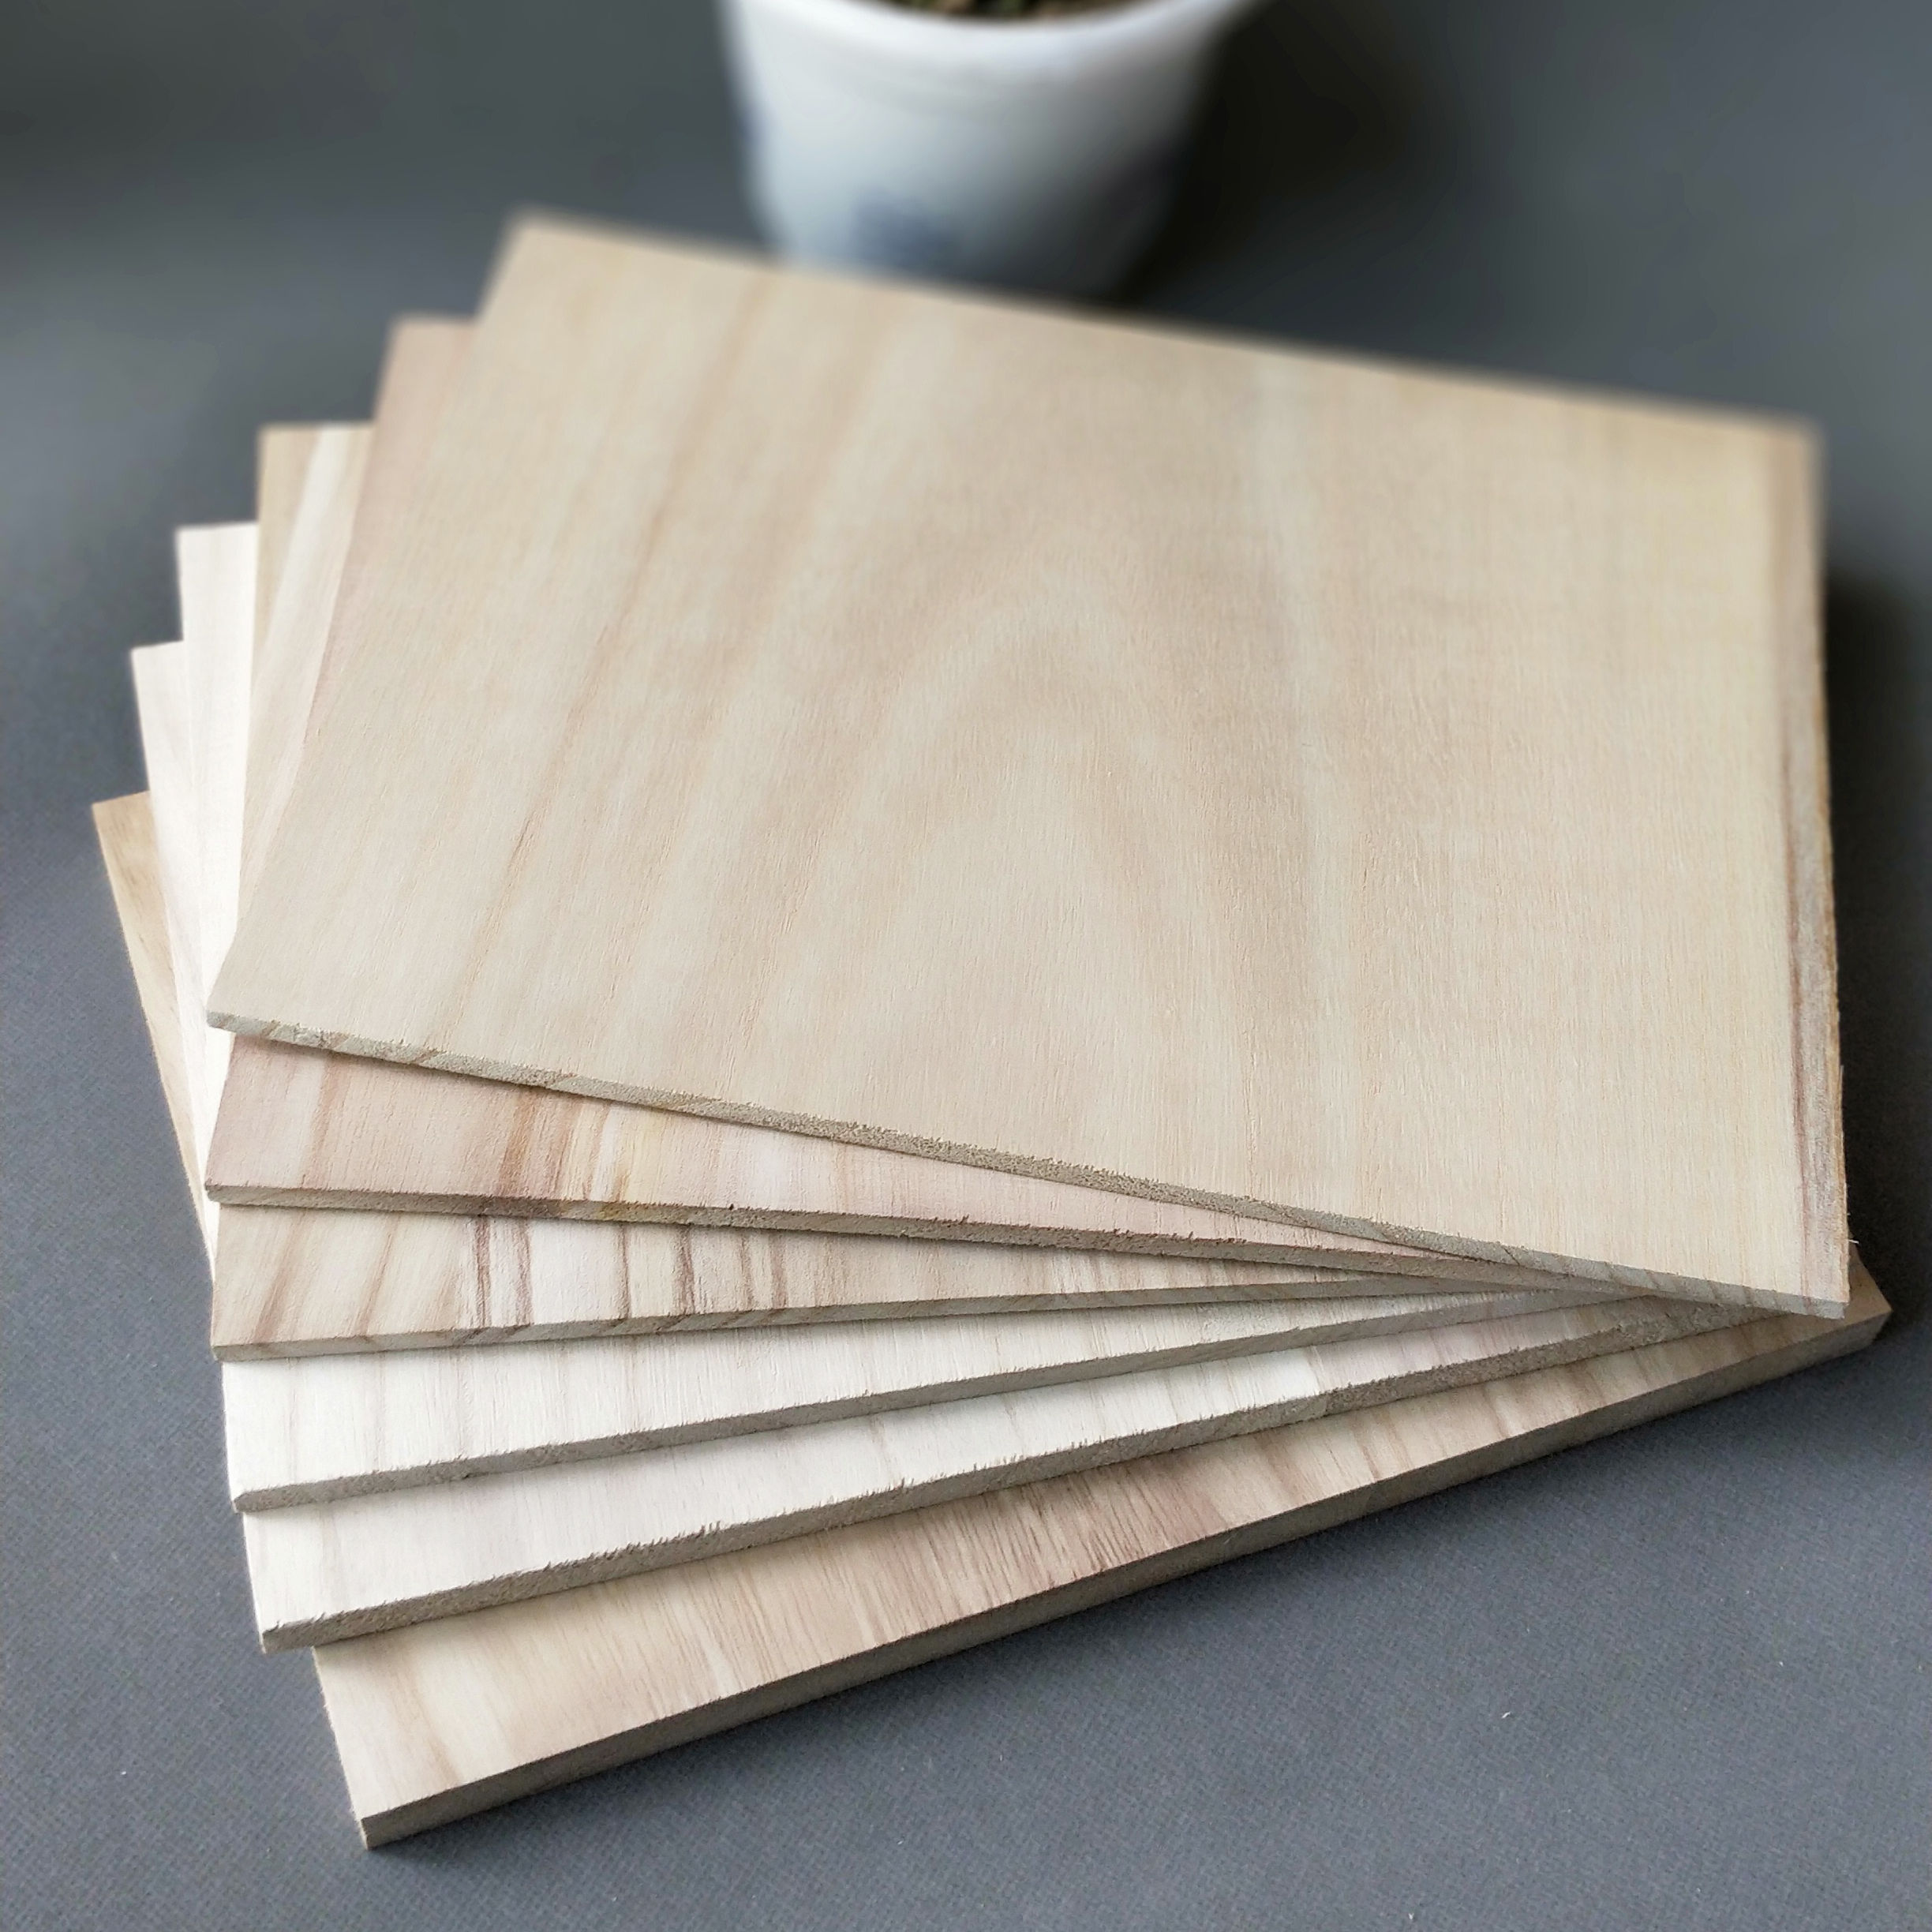 오동 Board 목재 Solid Wood Board 오동 Board